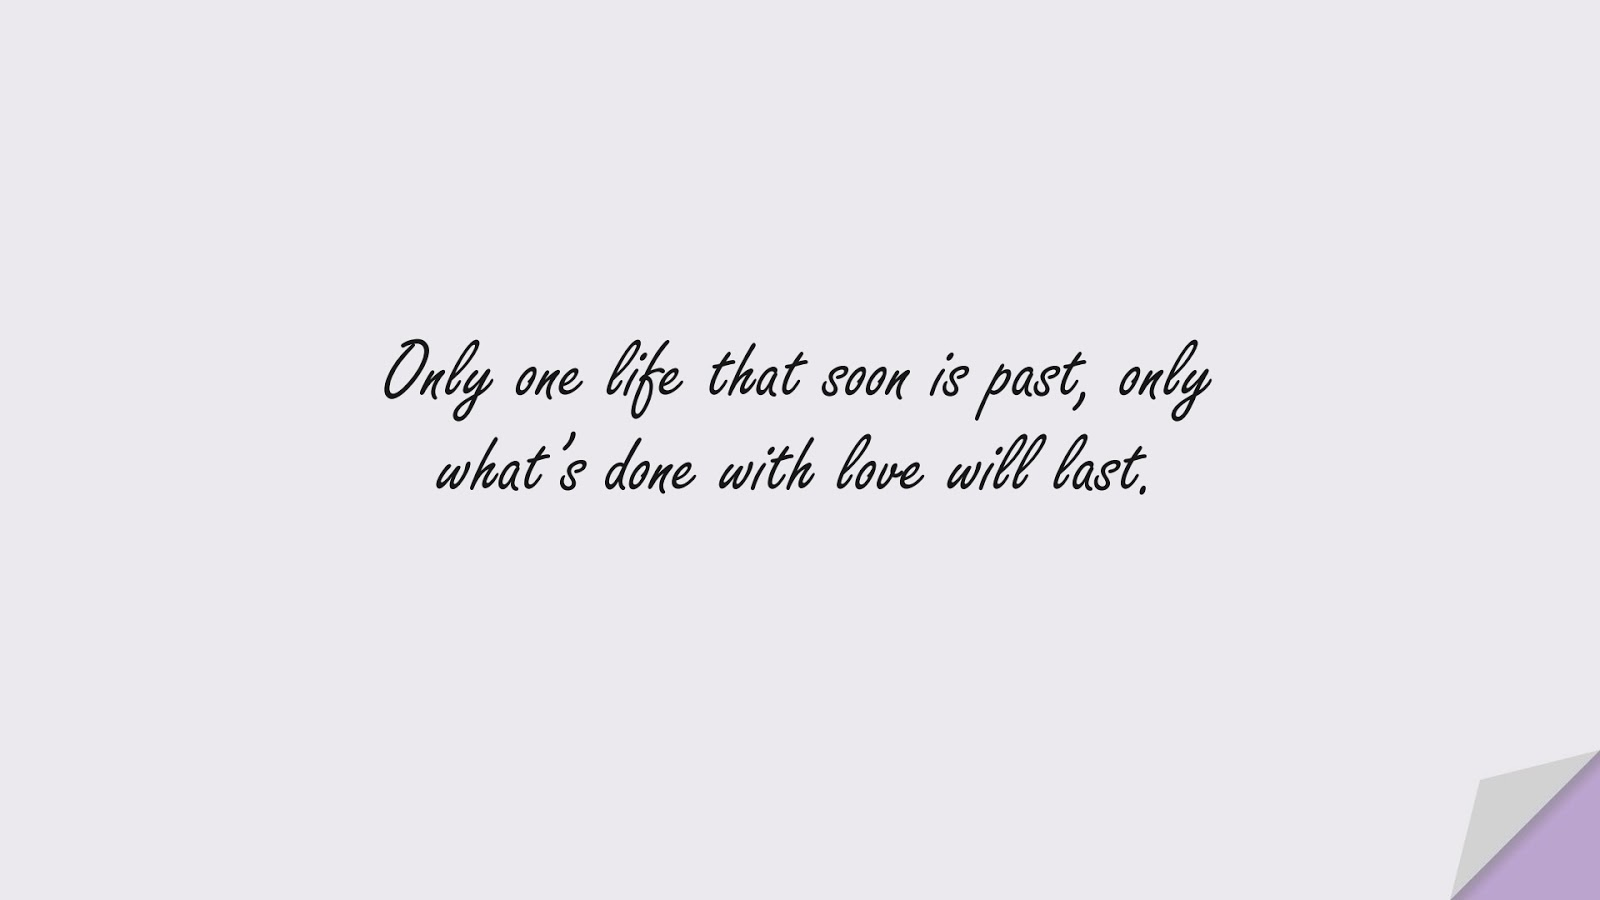 Only one life that soon is past, only what's done with love will last.FALSE